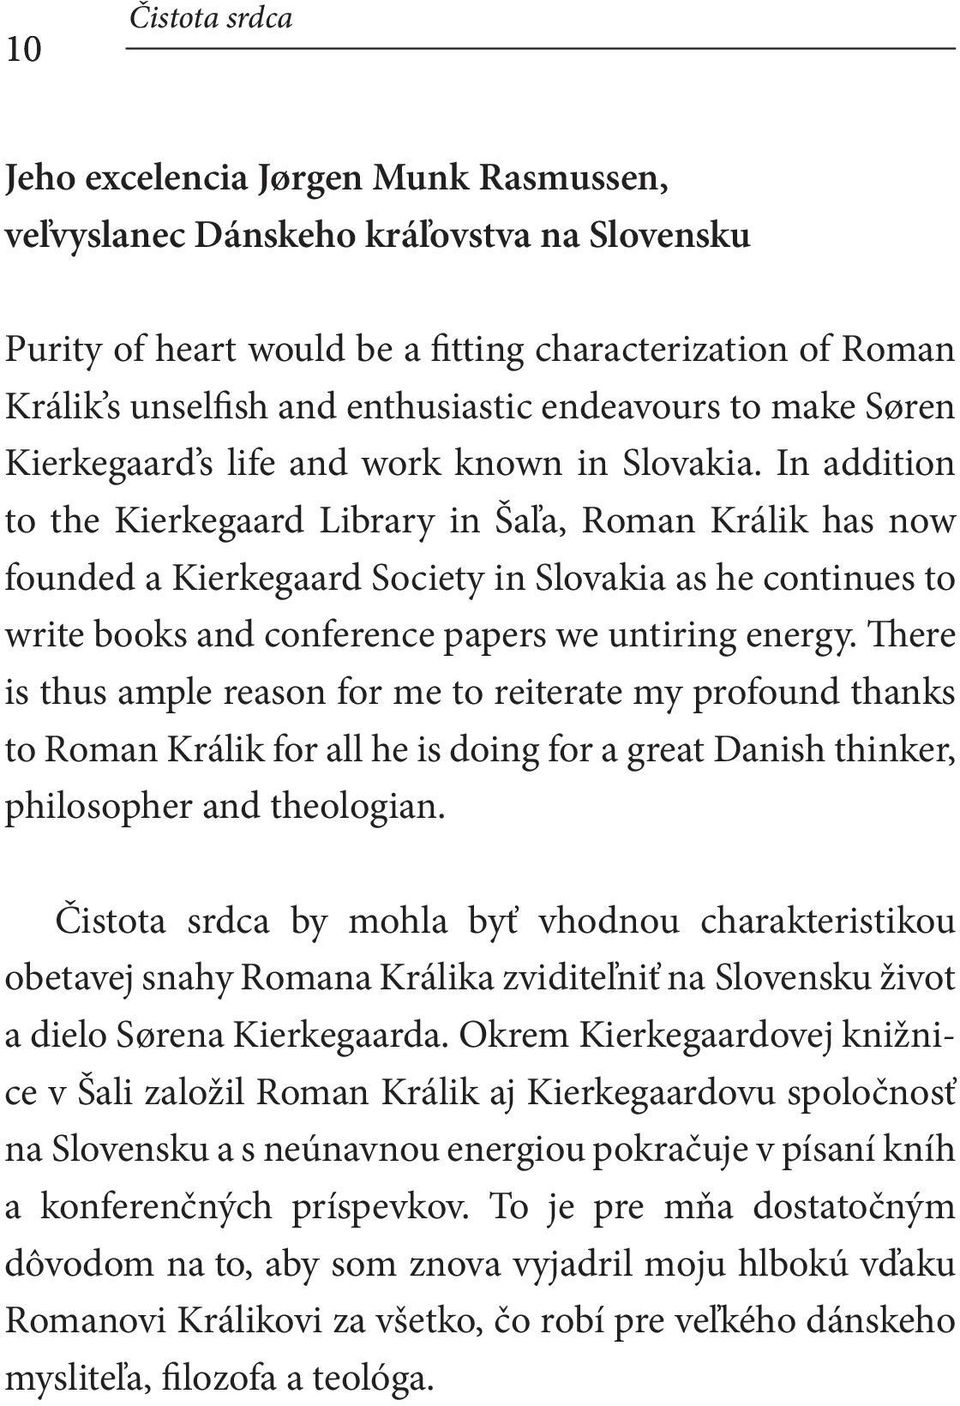 In addition to the Kierkegaard Library in Šaľa, Roman Králik has now founded a Kierkegaard Society in Slovakia as he continues to write books and conference papers we untiring energy.